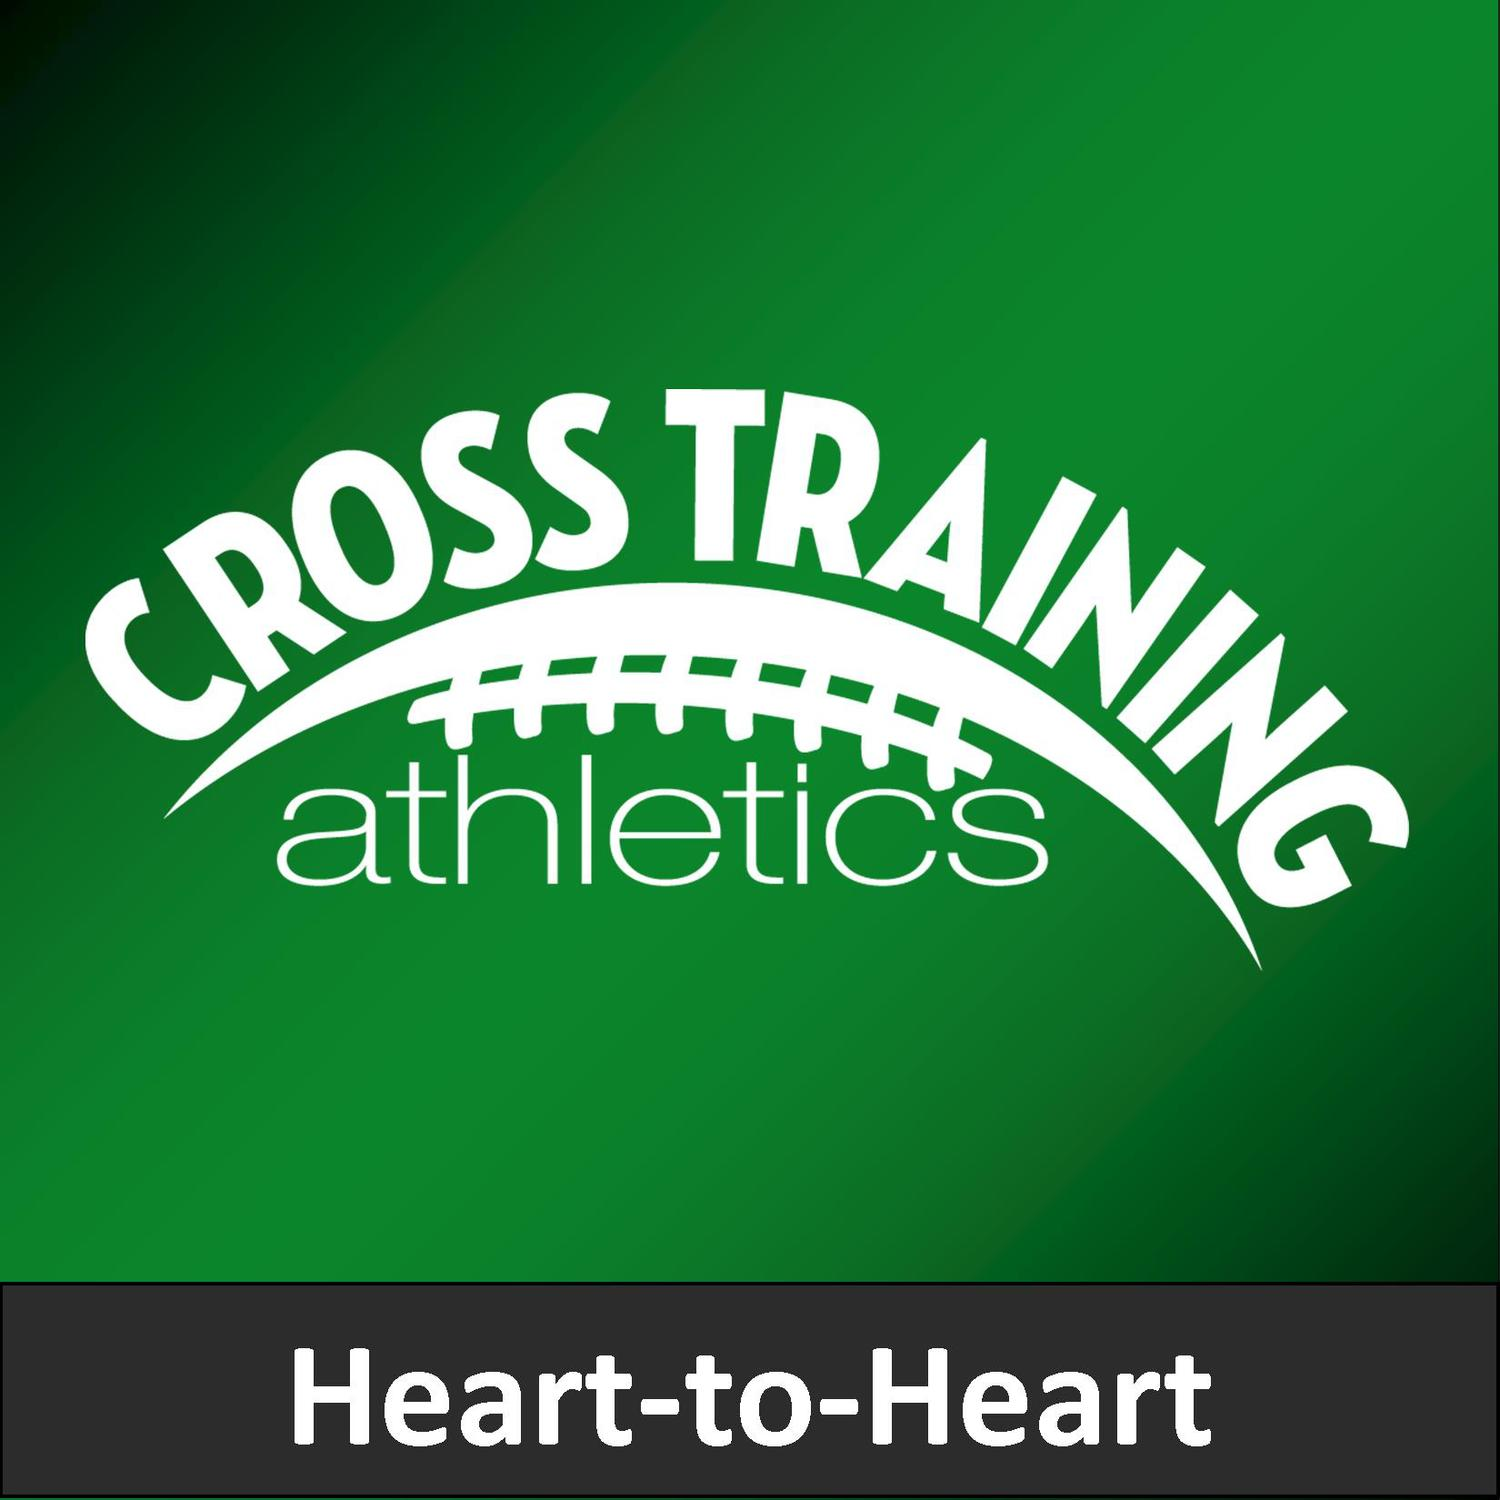 Cross Training Athletics - Heart-to-Heart